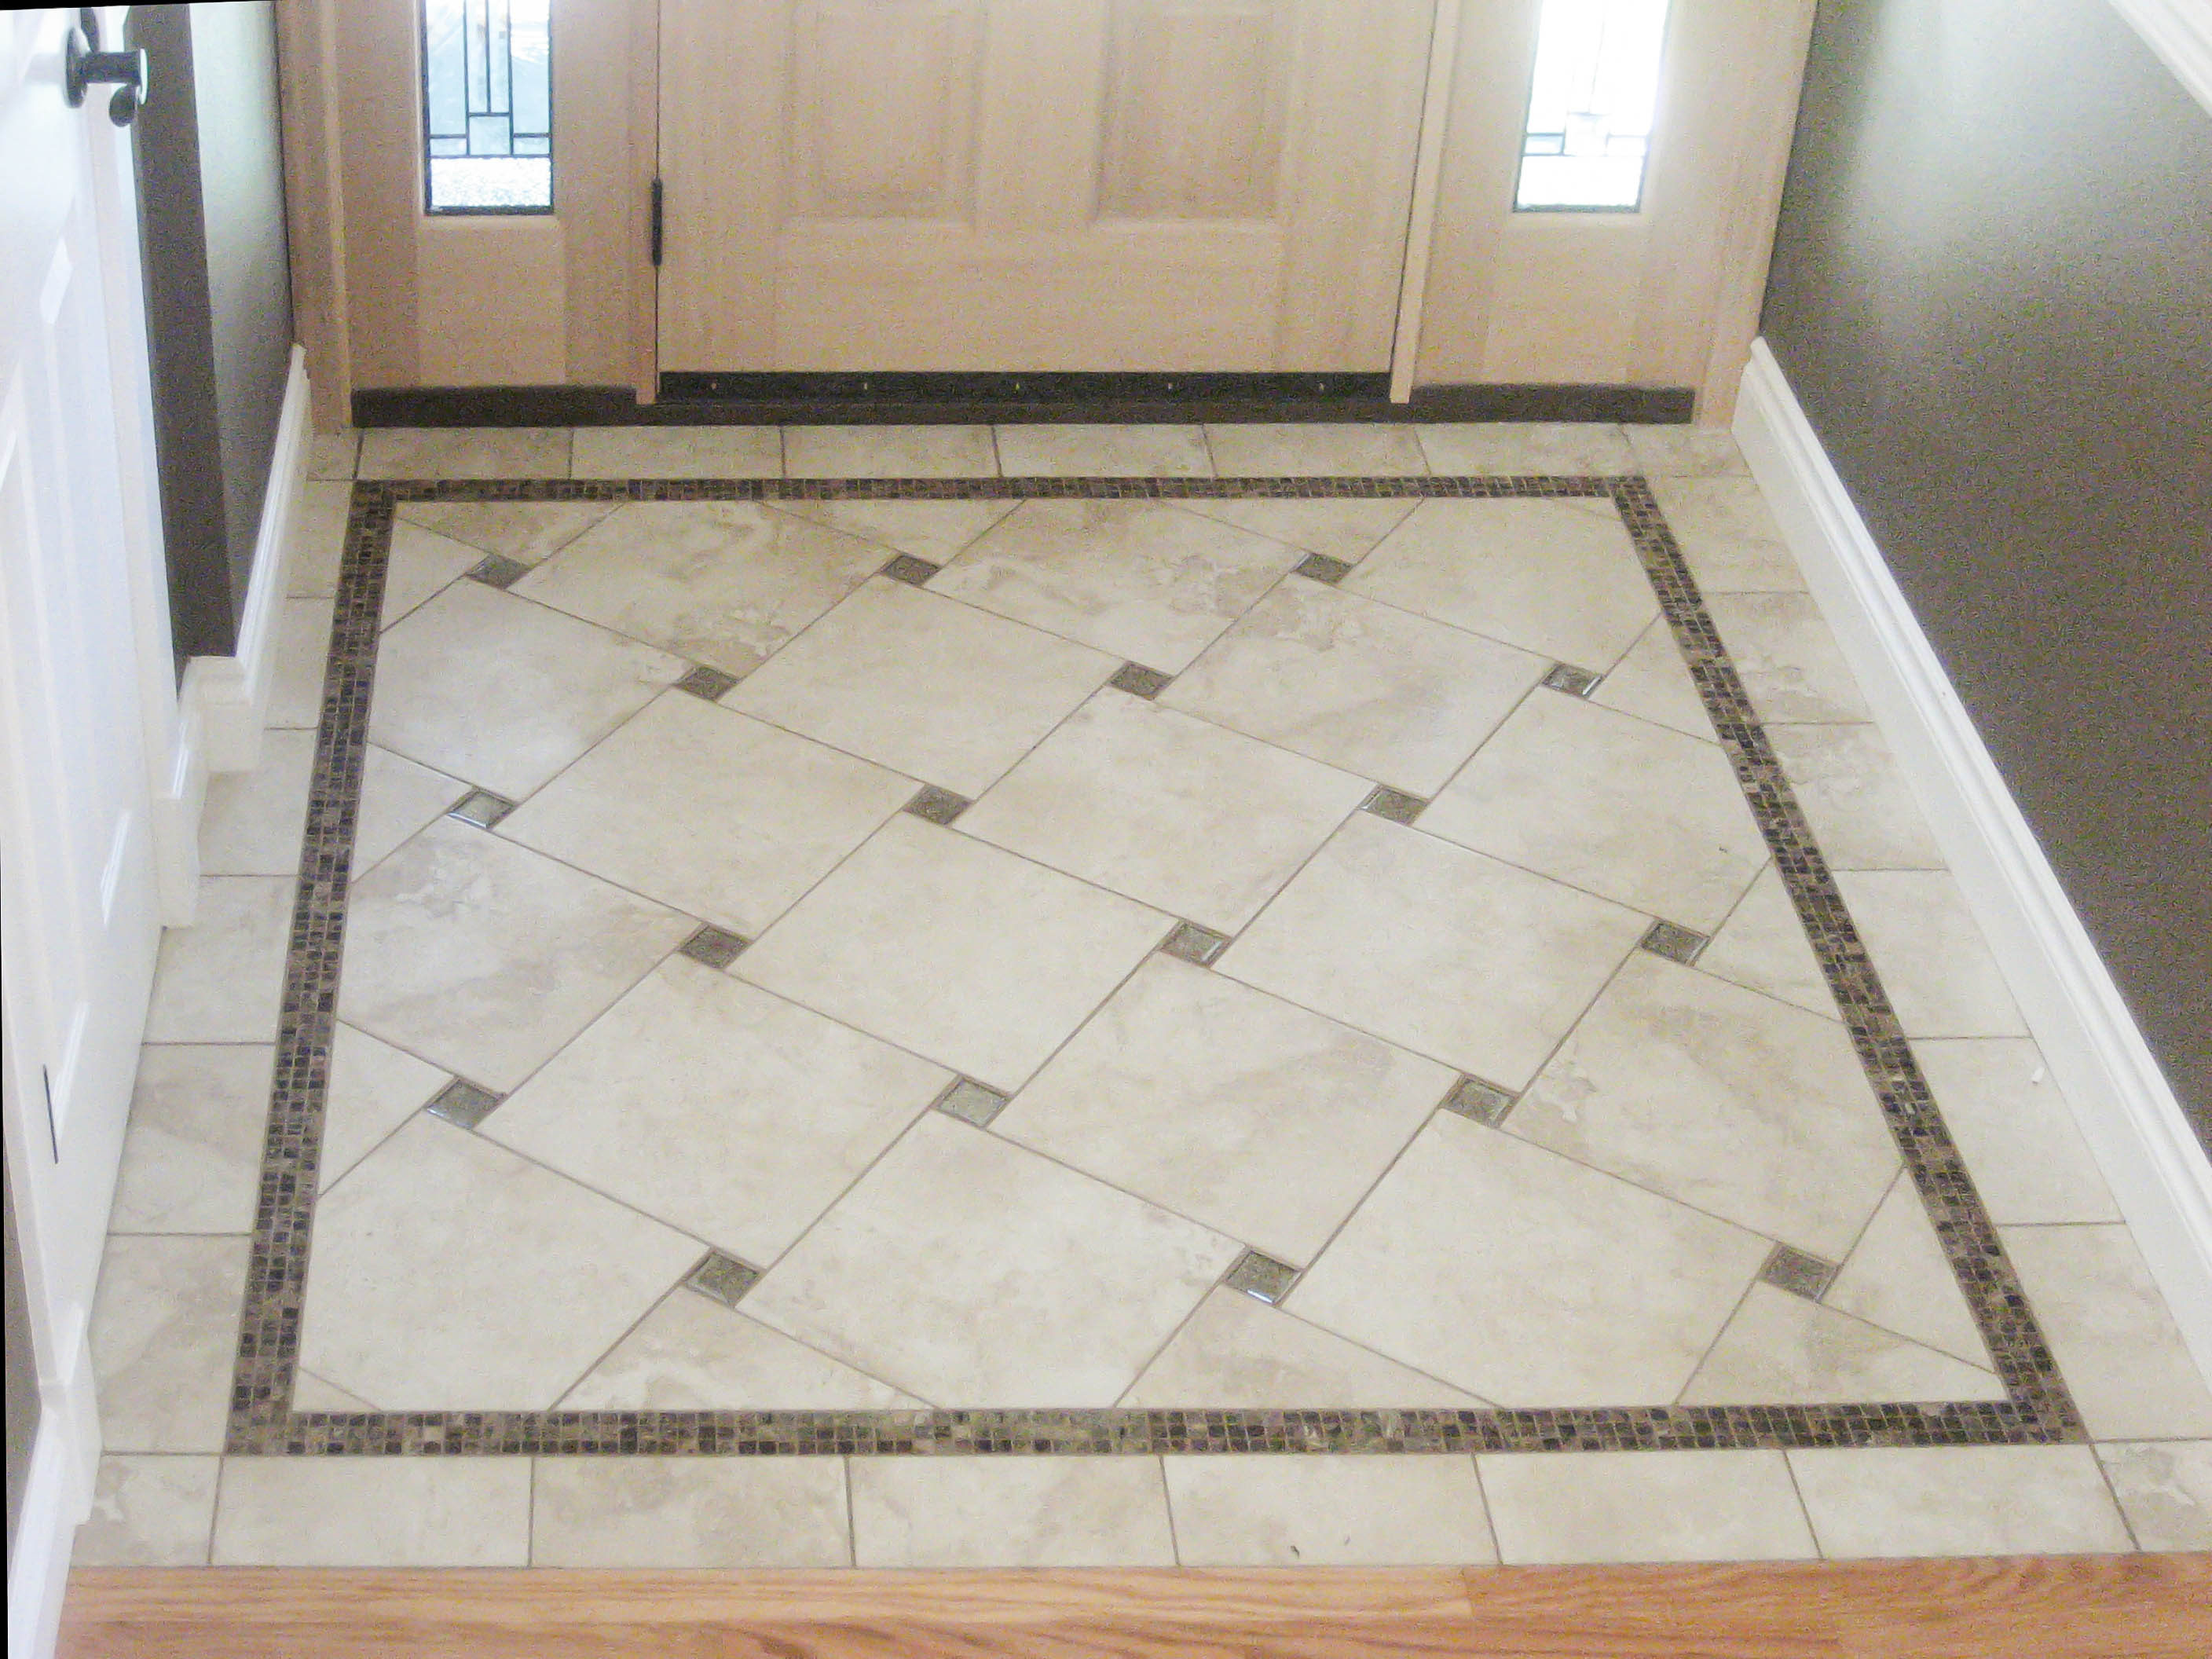 Entry Floor Photos Gallery - Seattle Tile Contractor | IRC Tile Servic